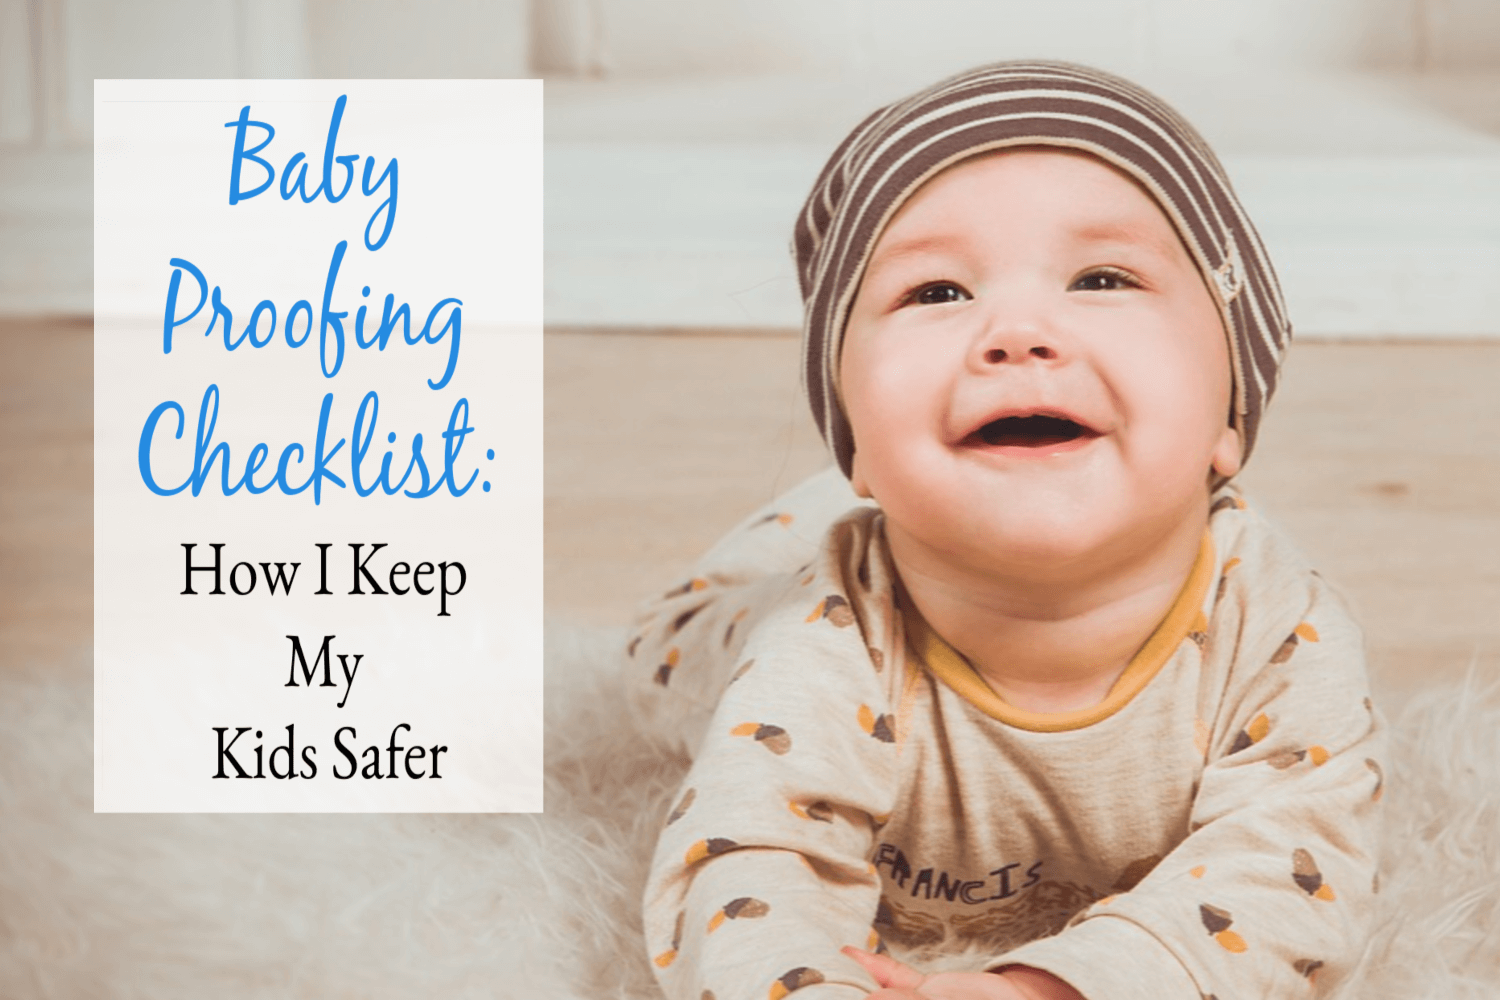 Baby Proofing Checklist (From A Mom, RN)